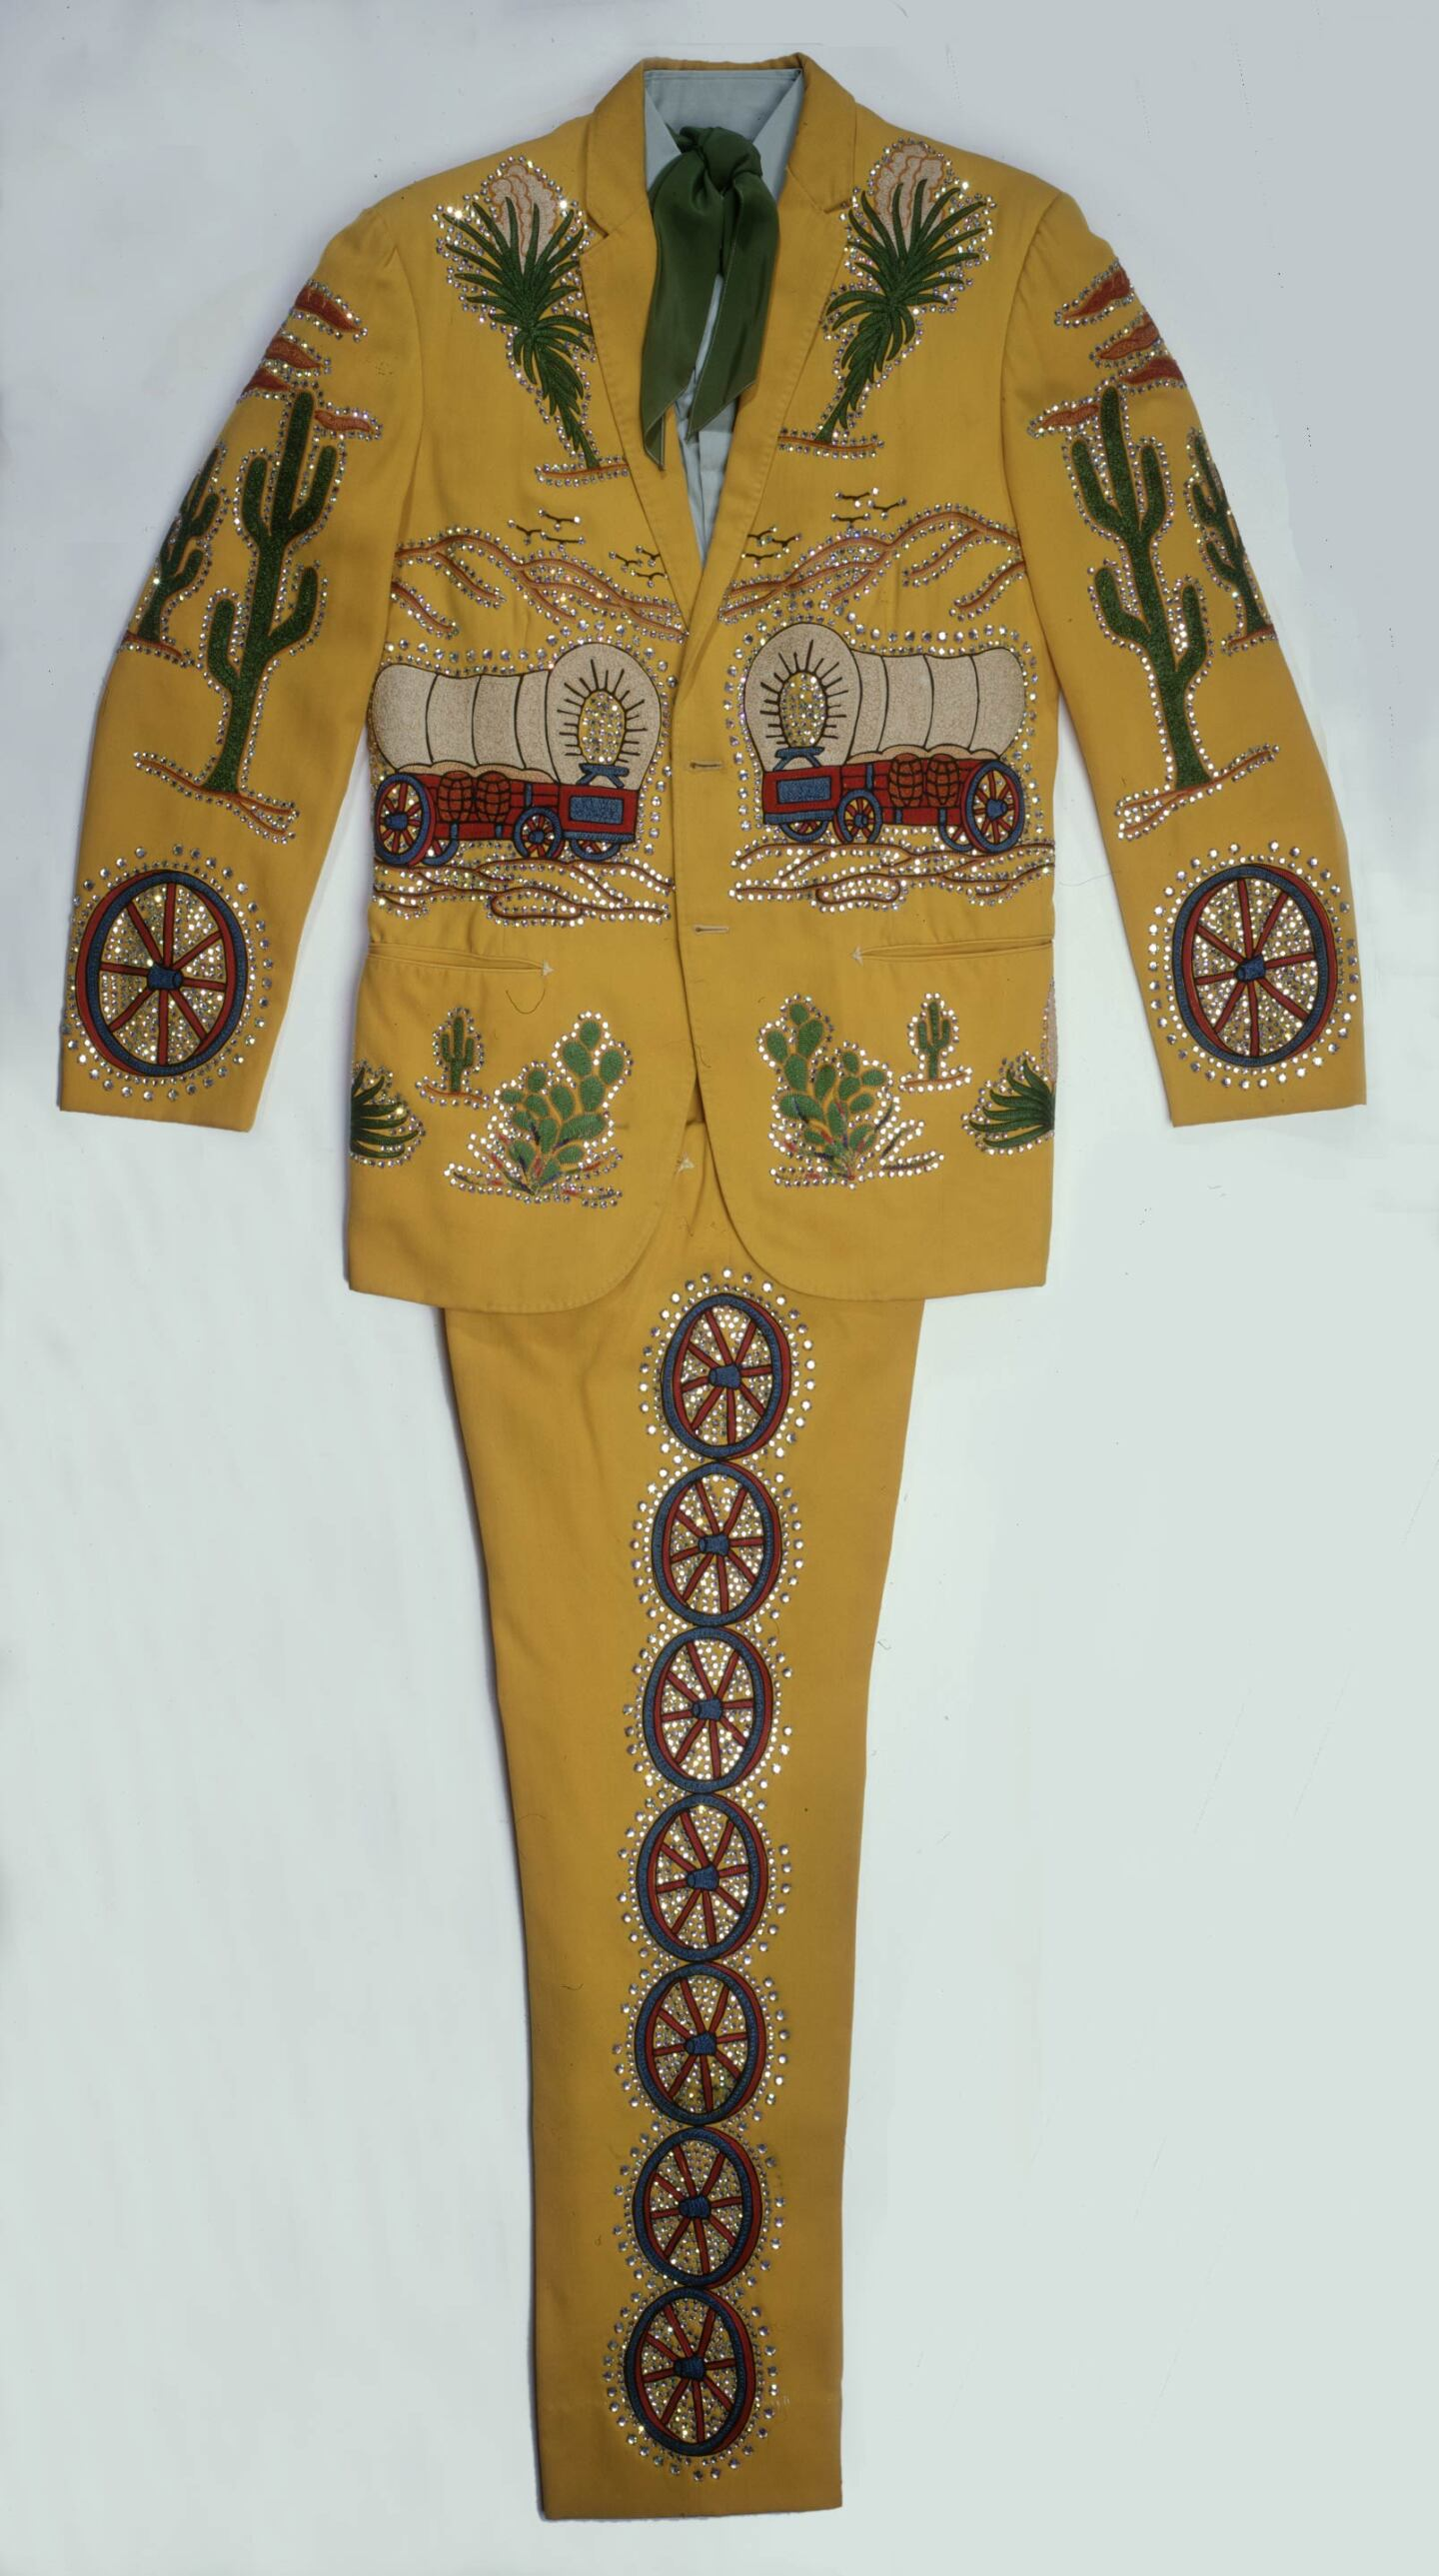 Porter Wagoner's signature Nudie suit is filled with wagons, wagon wheels and cacti | Courtesy of the Autry Museum of the American West